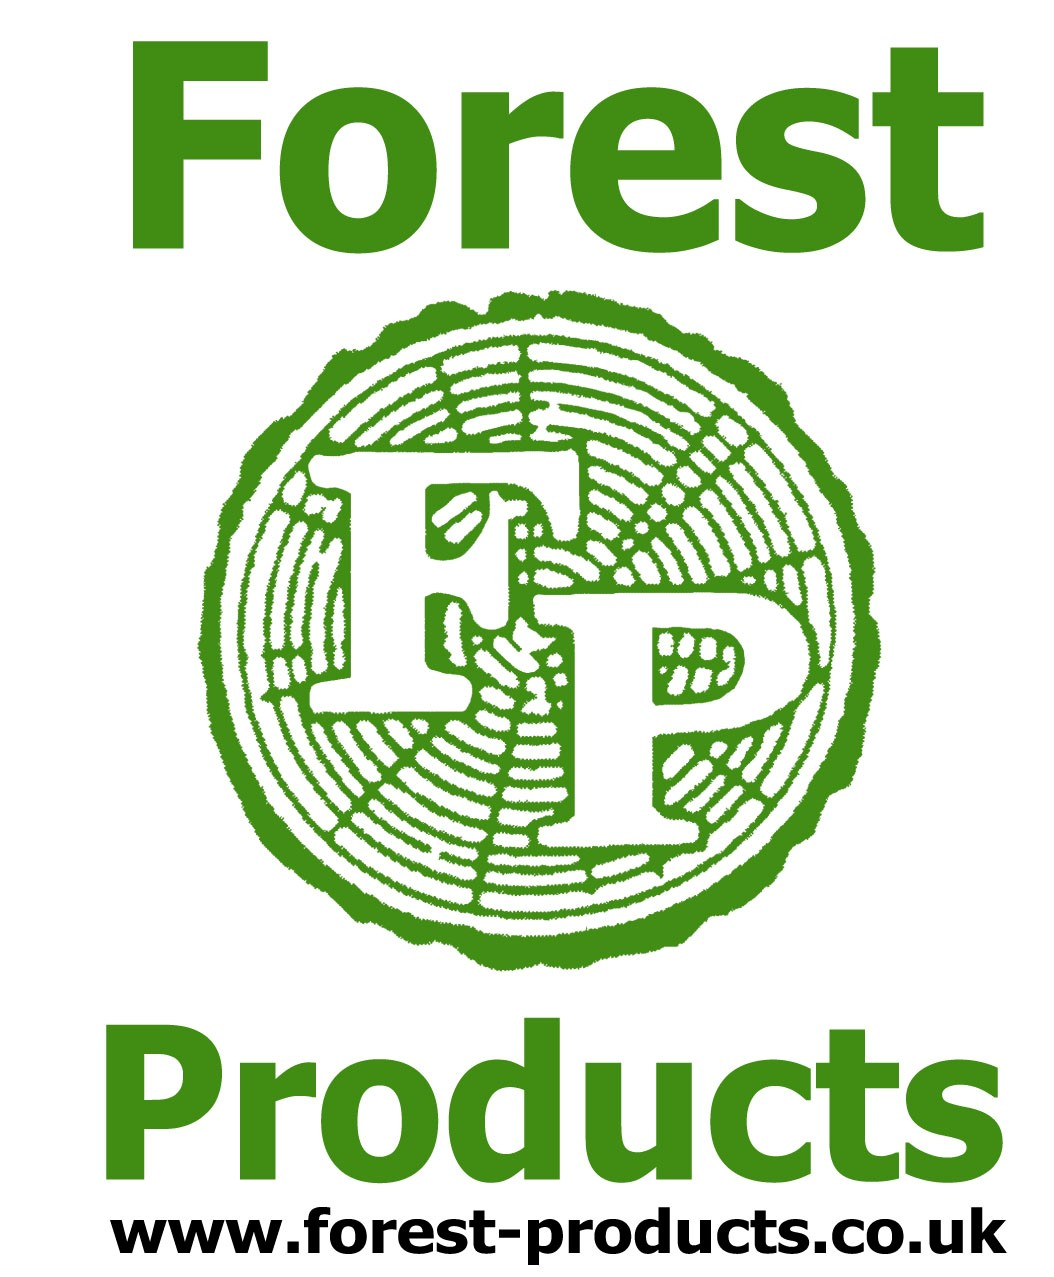 logo of Forest Products